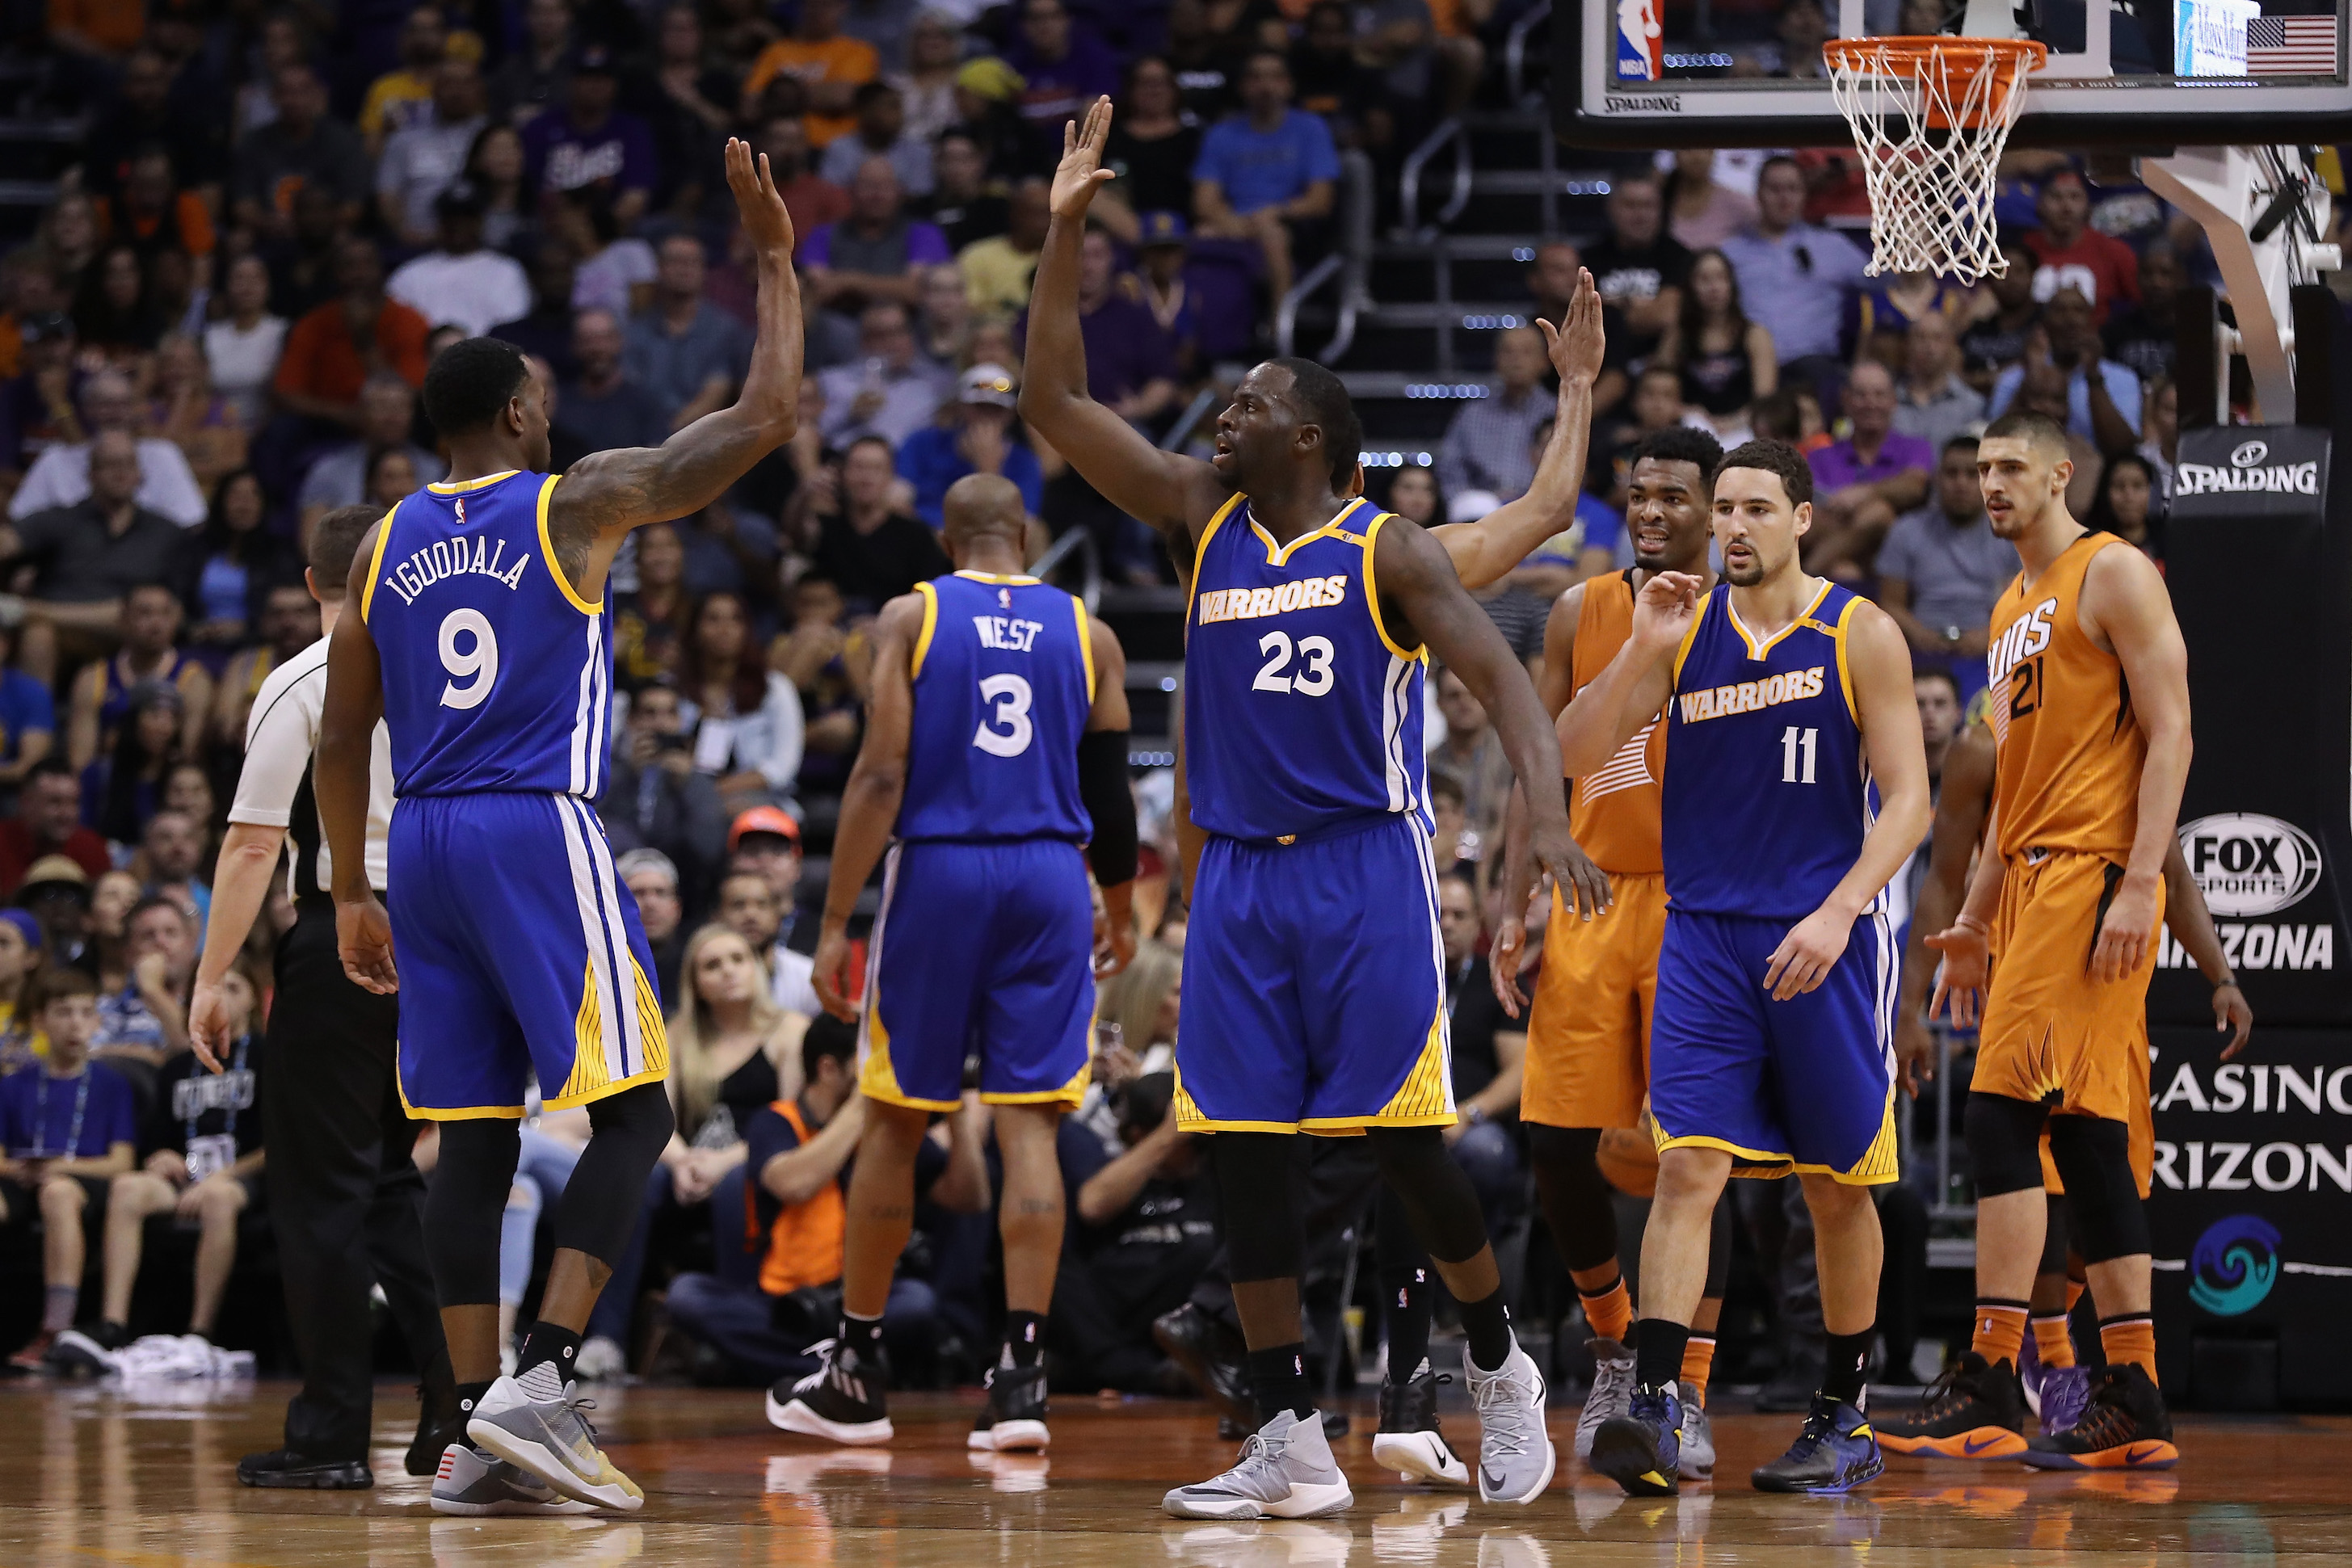 PHOENIX, AZ - OCTOBER 30: Draymond Green #23 of the Golden State Warriors high fives Andre Iguodala #9 after scoring against the Phoenix Suns during the second half of the NBA game at Talking Stick Resort Arena on October 30, 2016 in Phoenix, Arizona. The Warriors defeated the Suns 106 -100. NOTE TO USER: User expressly acknowledges and agrees that, by downloading and or using this photograph, User is consenting to the terms and conditions of the Getty Images License Agreement. (Photo by Christian Petersen/Getty Images)